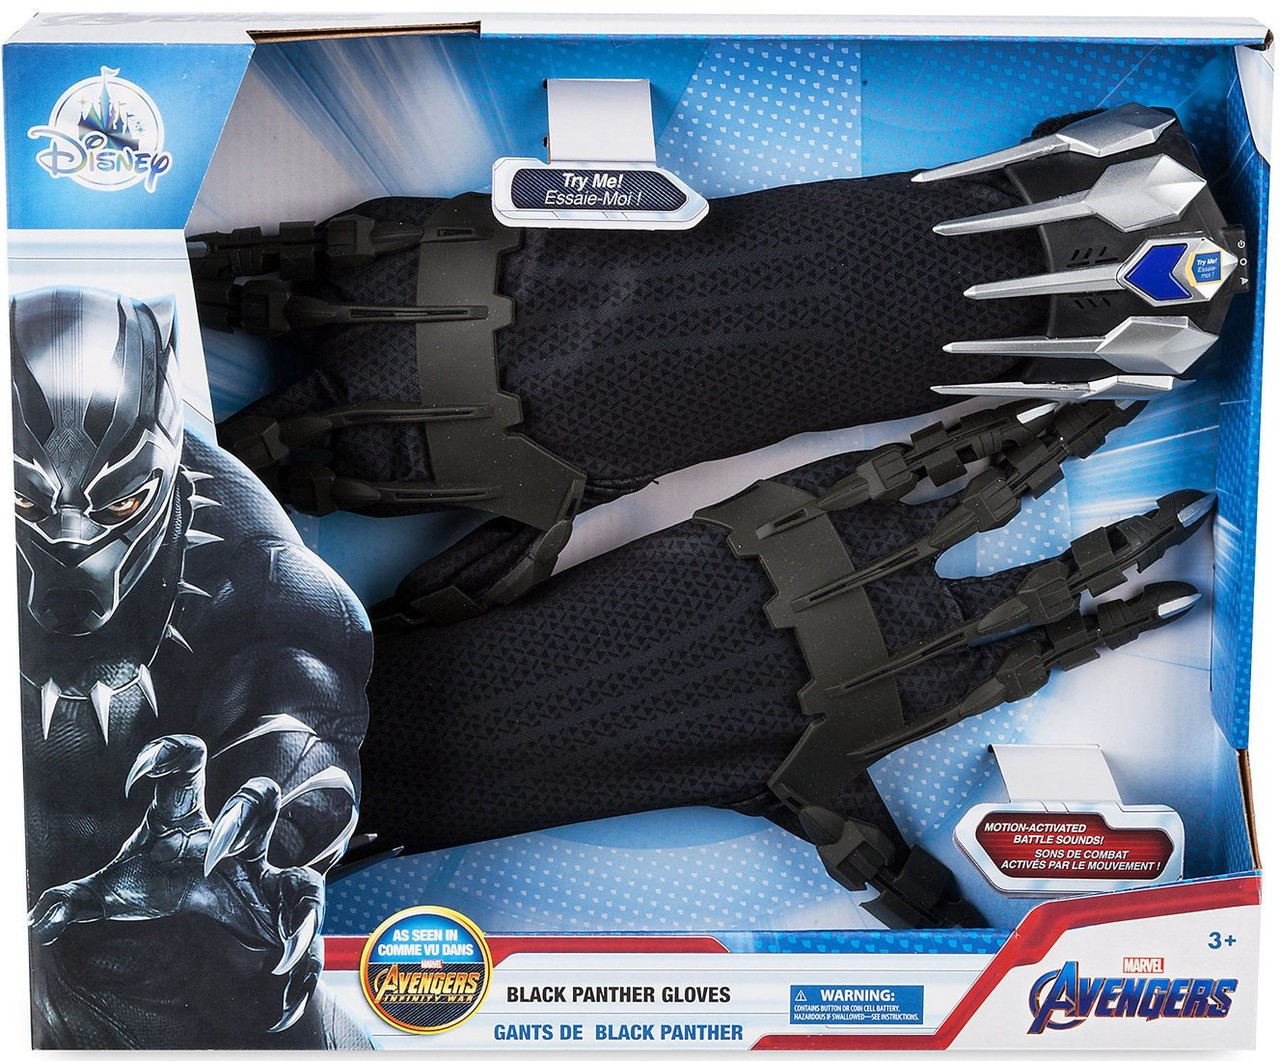 2019 Marvel Avengers Infinity War Black Panther Gloves Exclusive Roleplay Toy